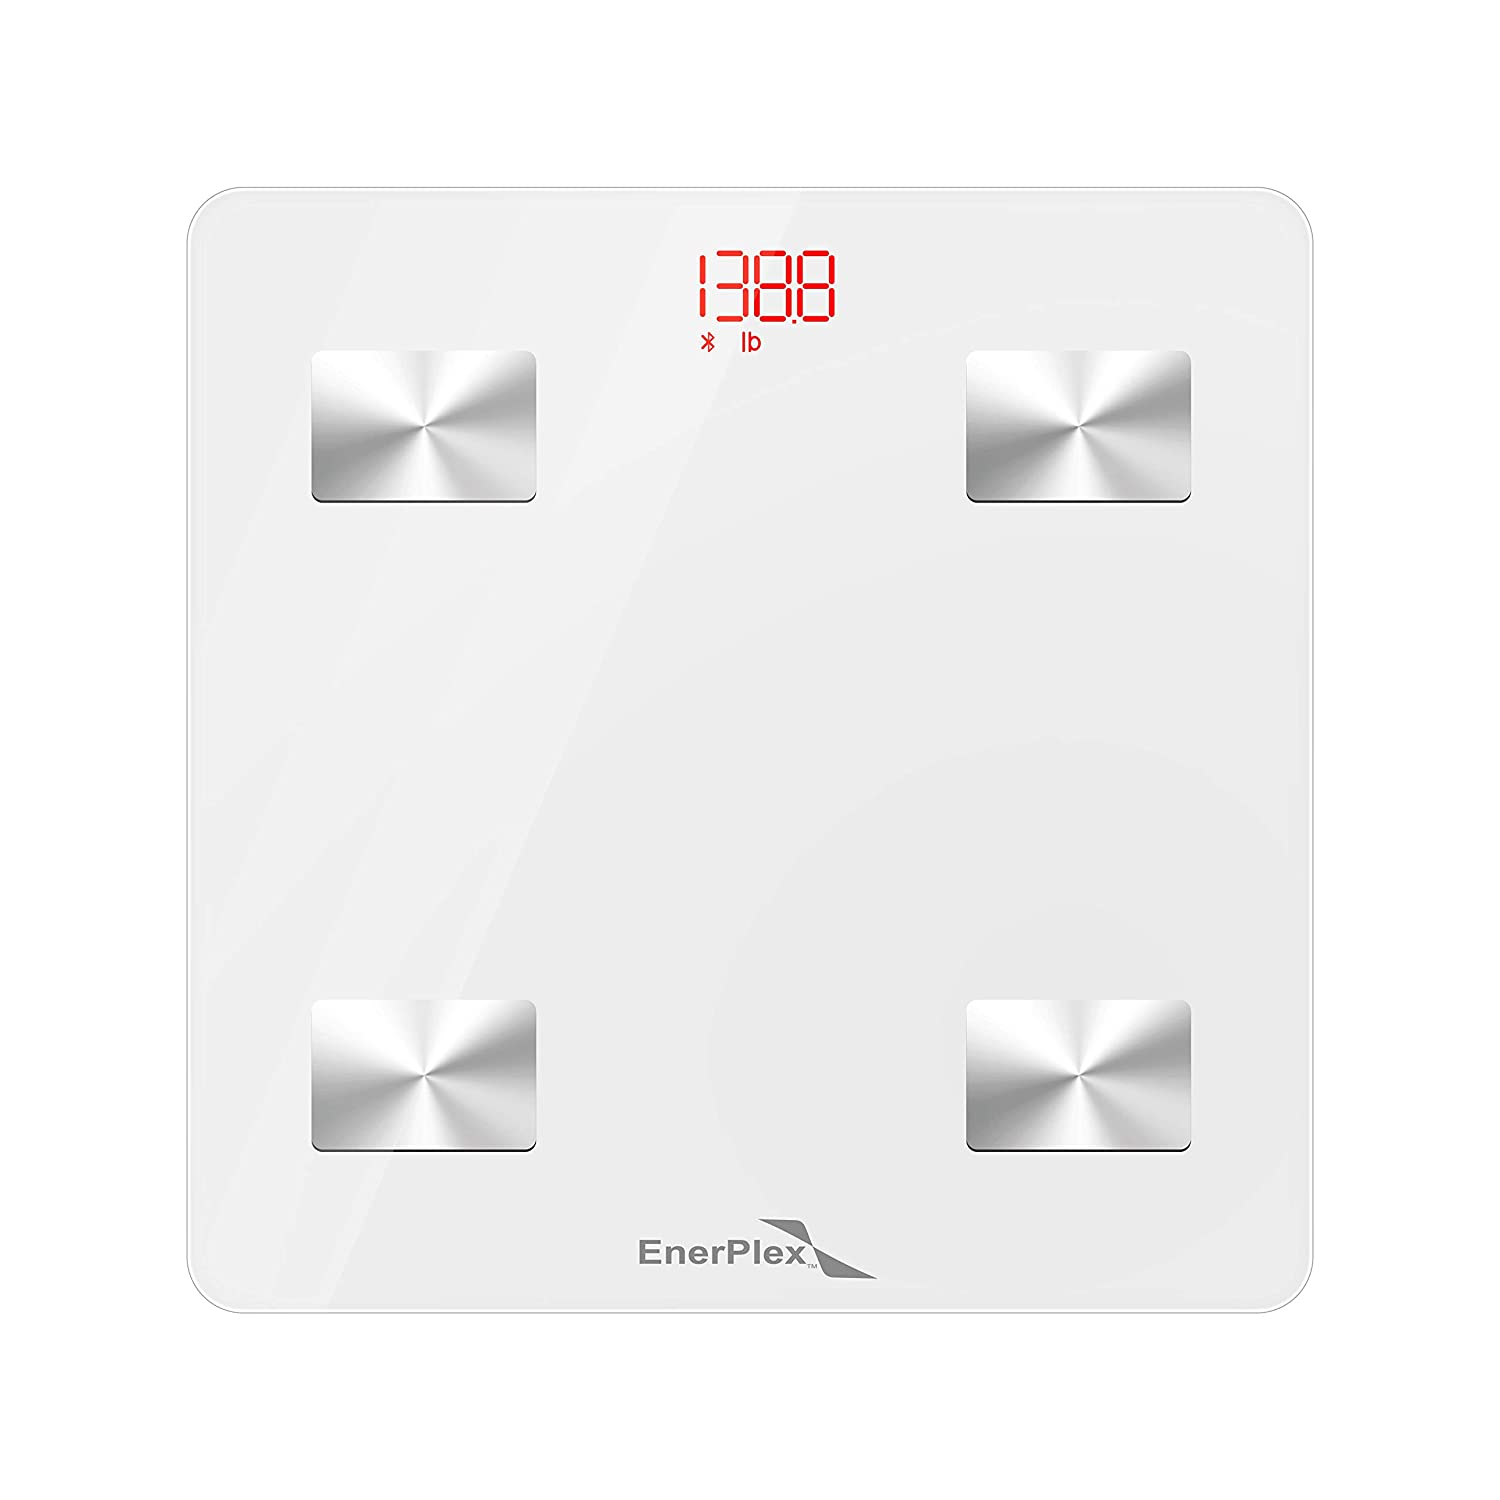 Best Body Fat Scale 2020 Amazon.com: Upgraded 2020 Edition Bluetooth Body Fat Scale